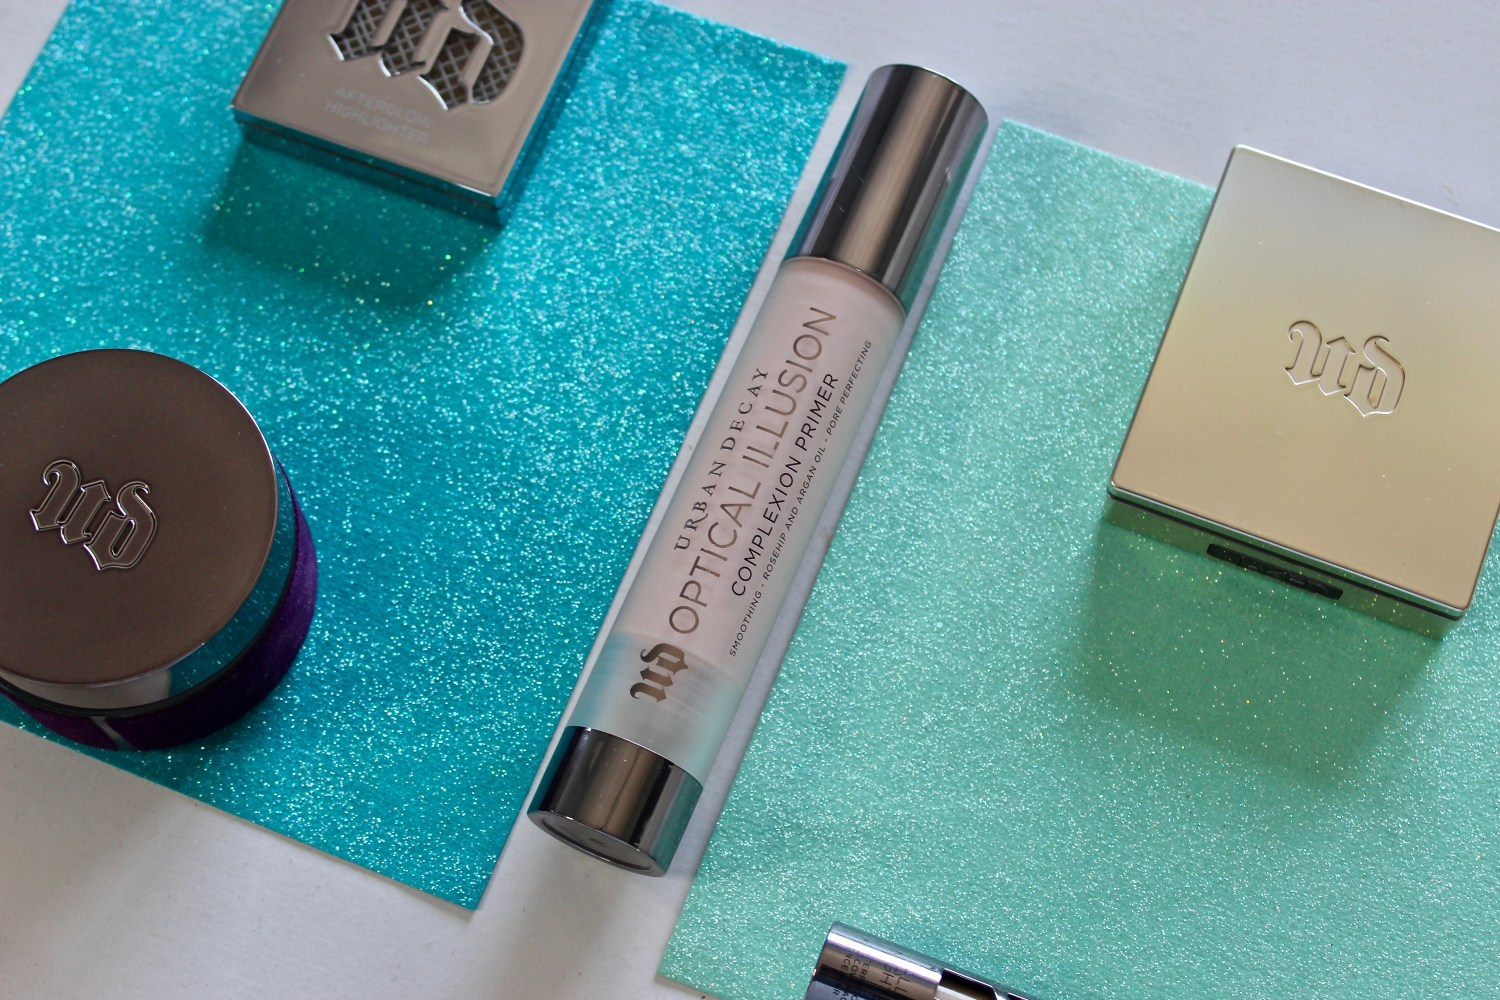 Optical Illusion Complexion Primer by Urban Decay #9